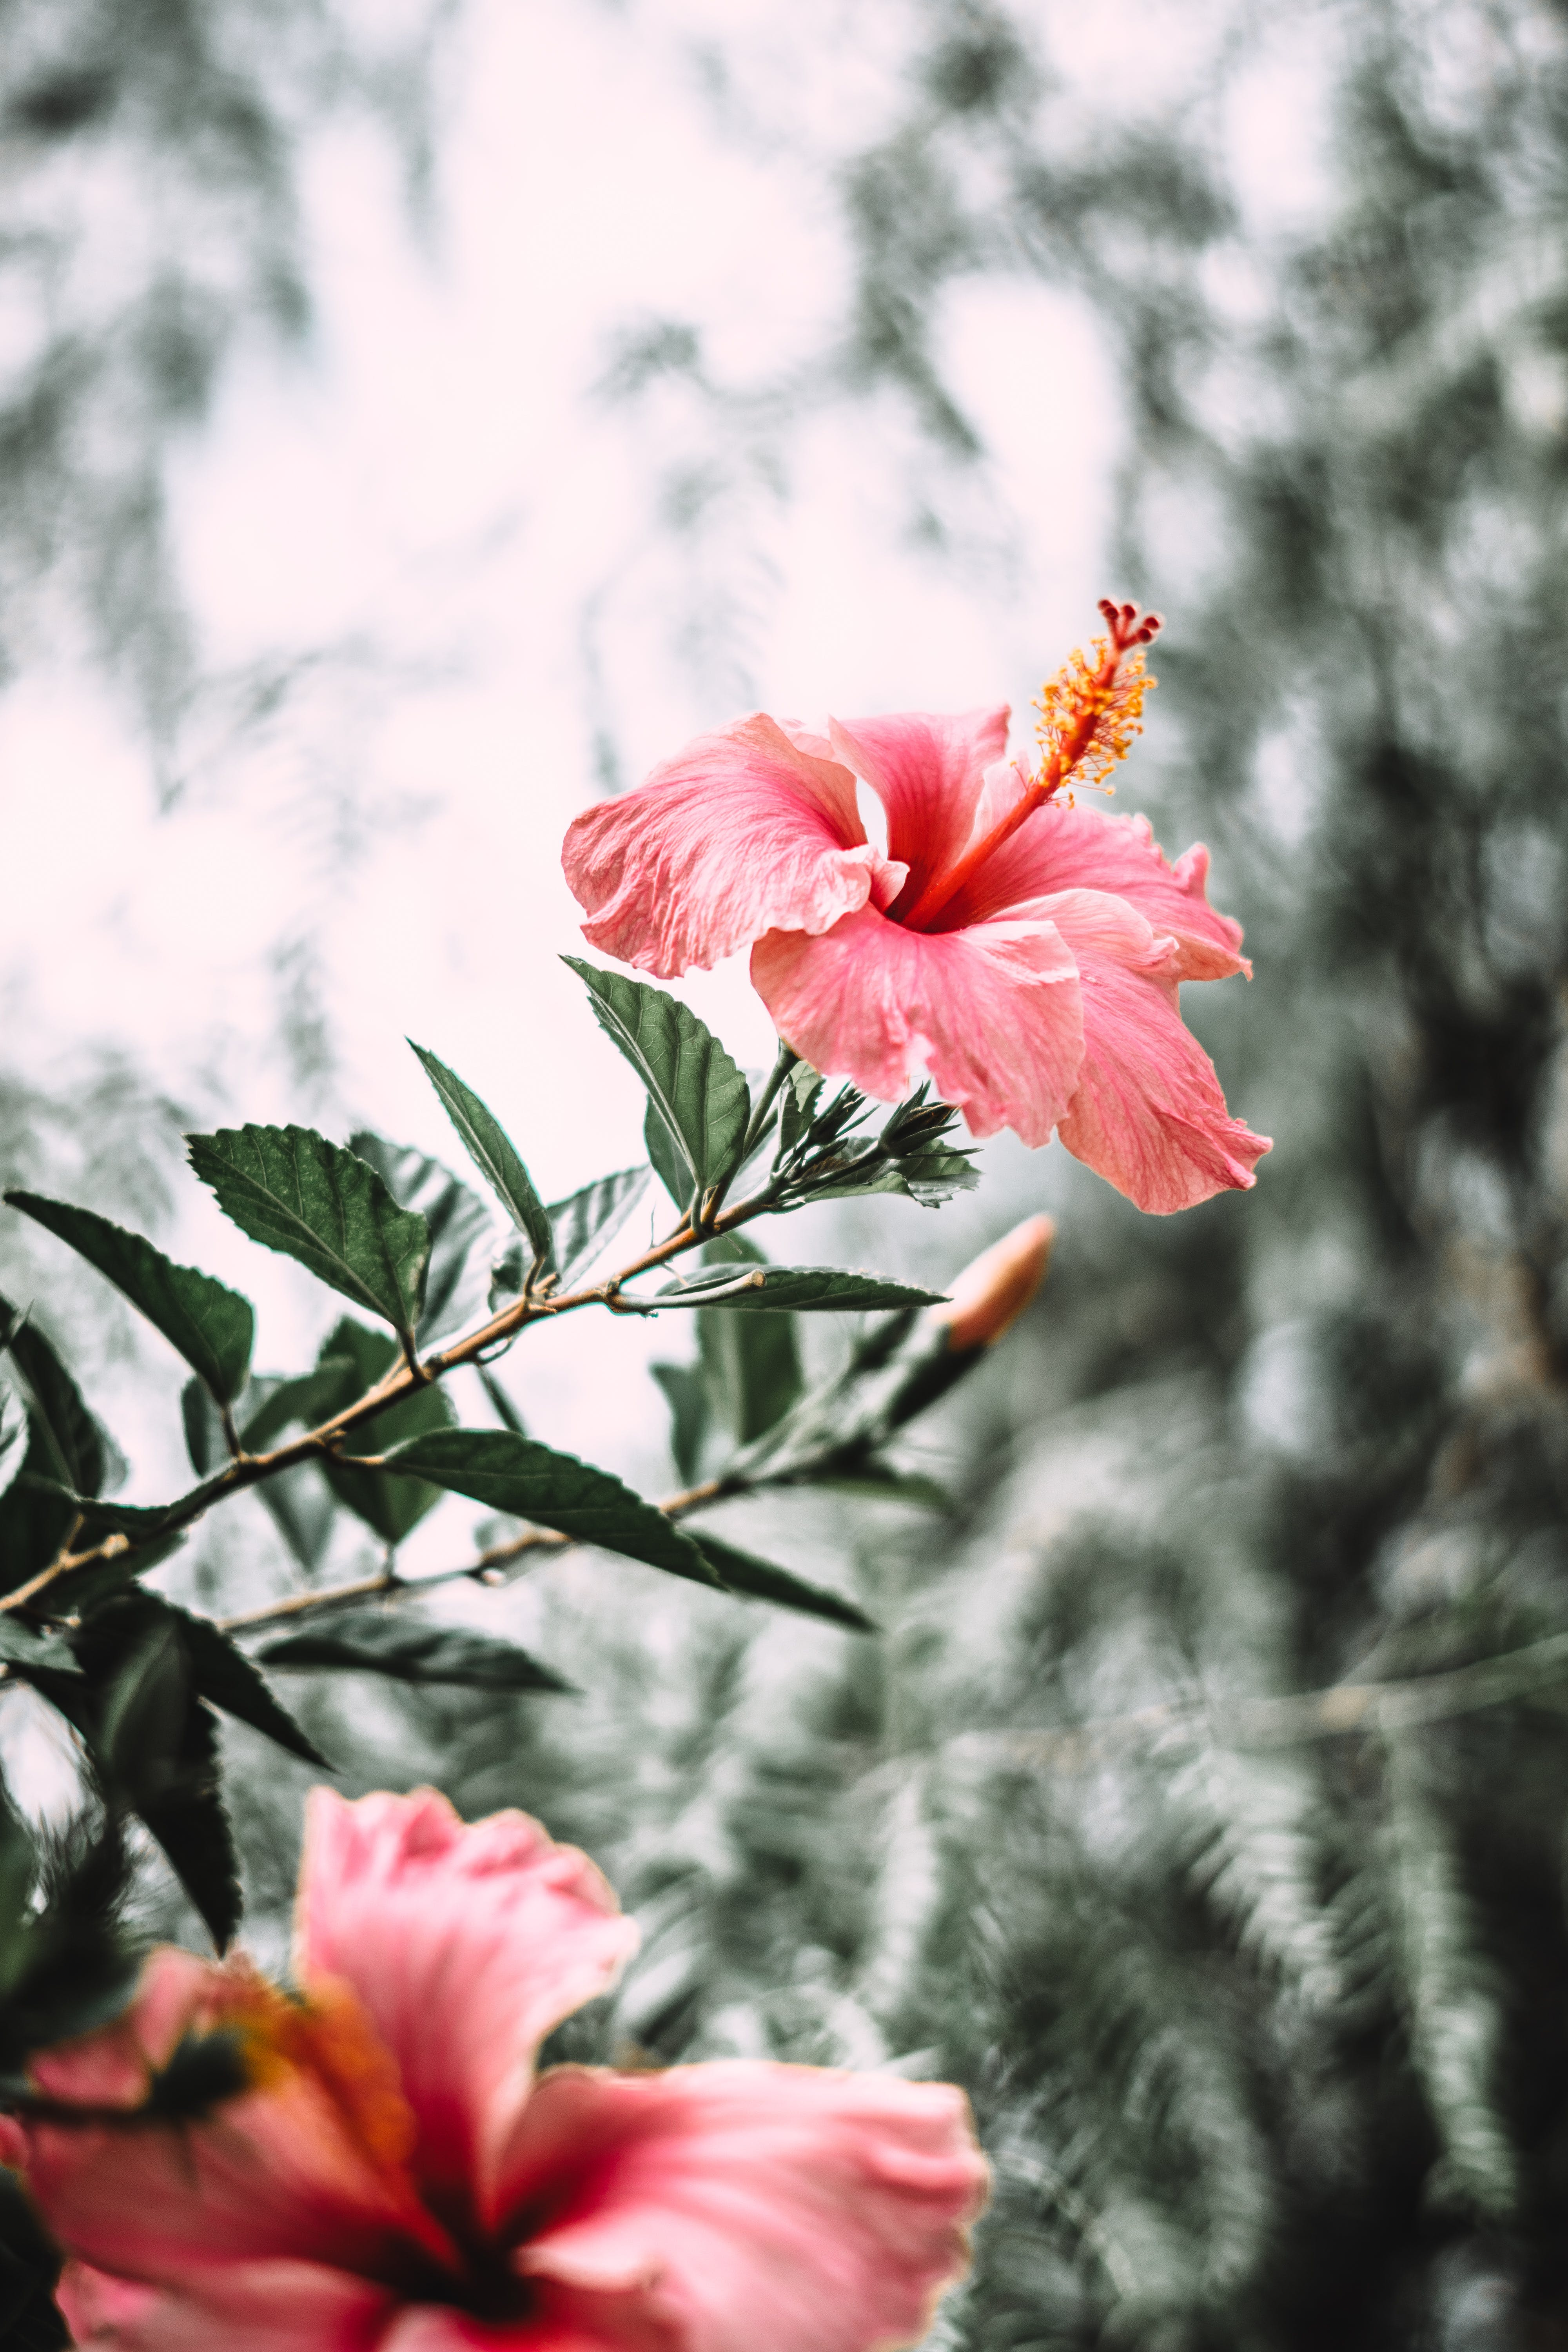 Selective Focus Photography of Pink Hibiscus Flower in Bloom